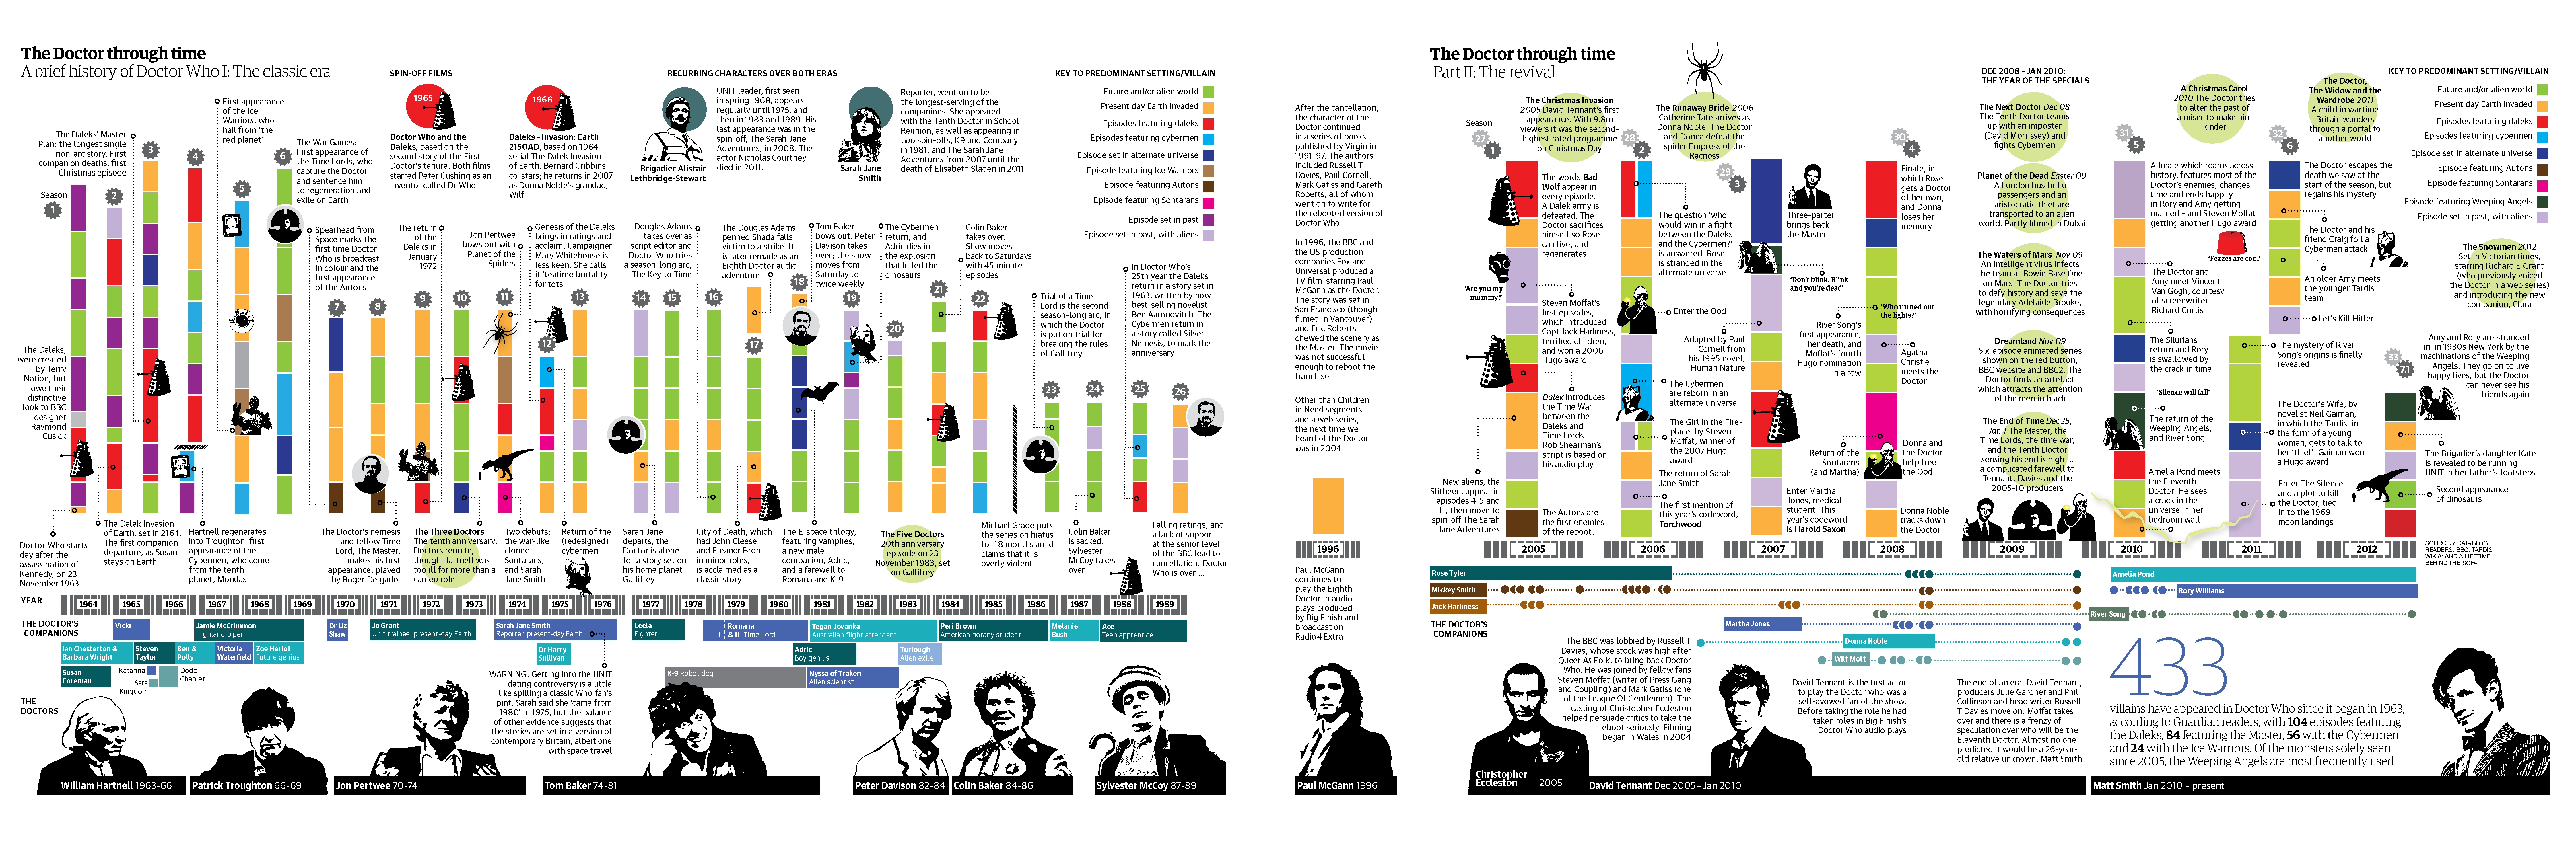 A Look At The 50th Anniversary Special for Doctor Who plus a great image showing the past & present Doctors and their enemies. Click on image for large version - The image details the timelines for all previous Doctors and the enemies that they have faced over the years. The image was created by Kari Pedersen for The Guardian newspaper - From the Guardian: 433 villains have appeared in Doctor Who since it began in 1963, according to Guardian readers, with 104 episodes featuring the Daleks…